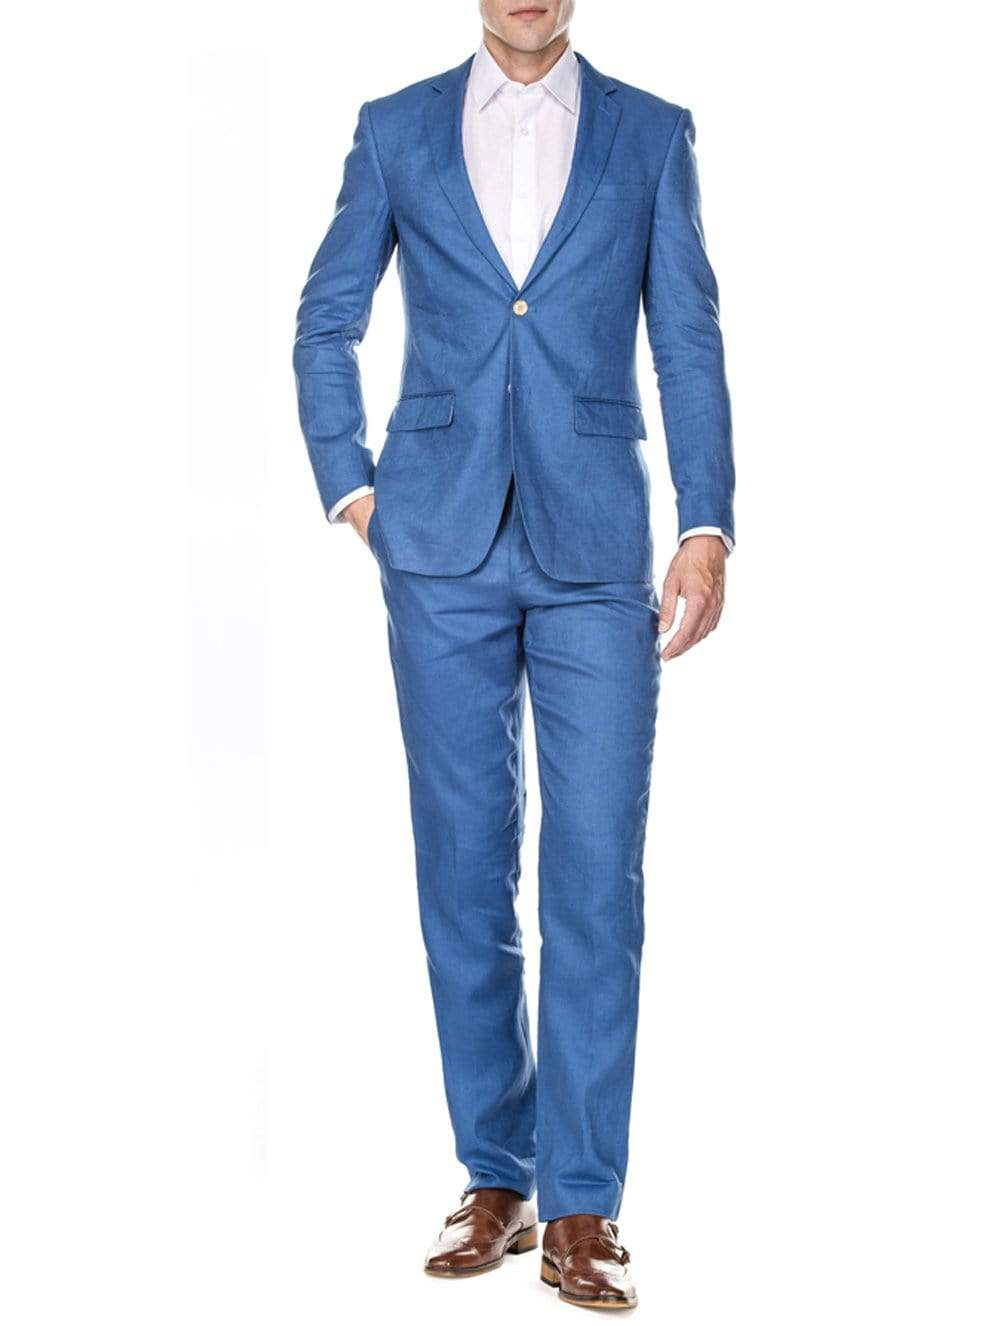 DAILY HAUTE Men's Suits INDIGO / 36Rx30W Gino Vitale Men's Slim Fit Pure Linen 2pc Suits